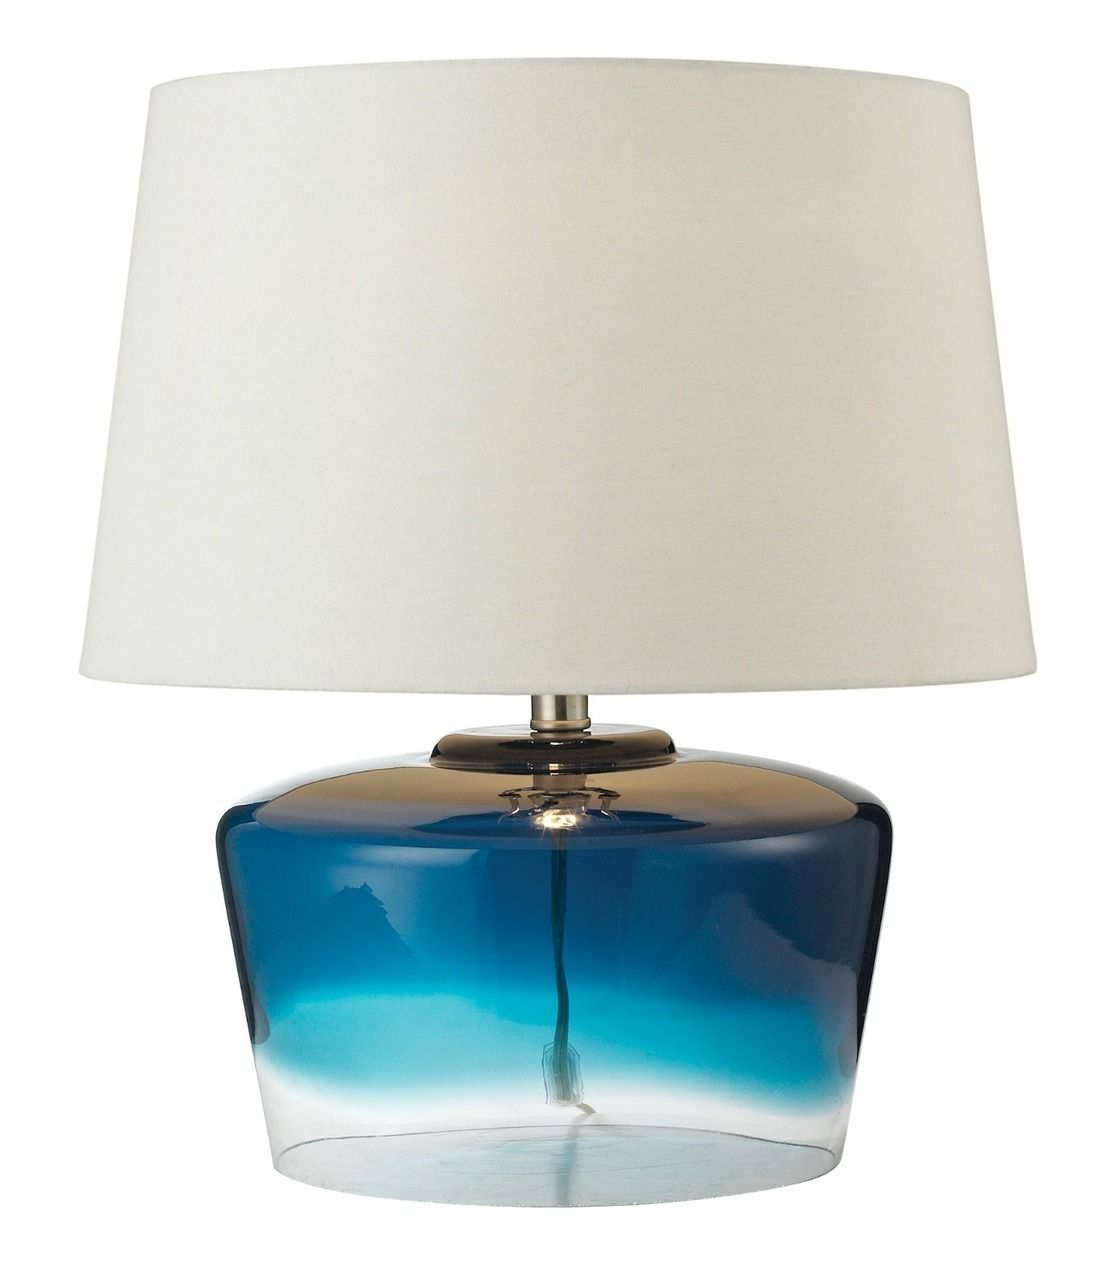 High Quality Belize Blue Glass Table Lamp